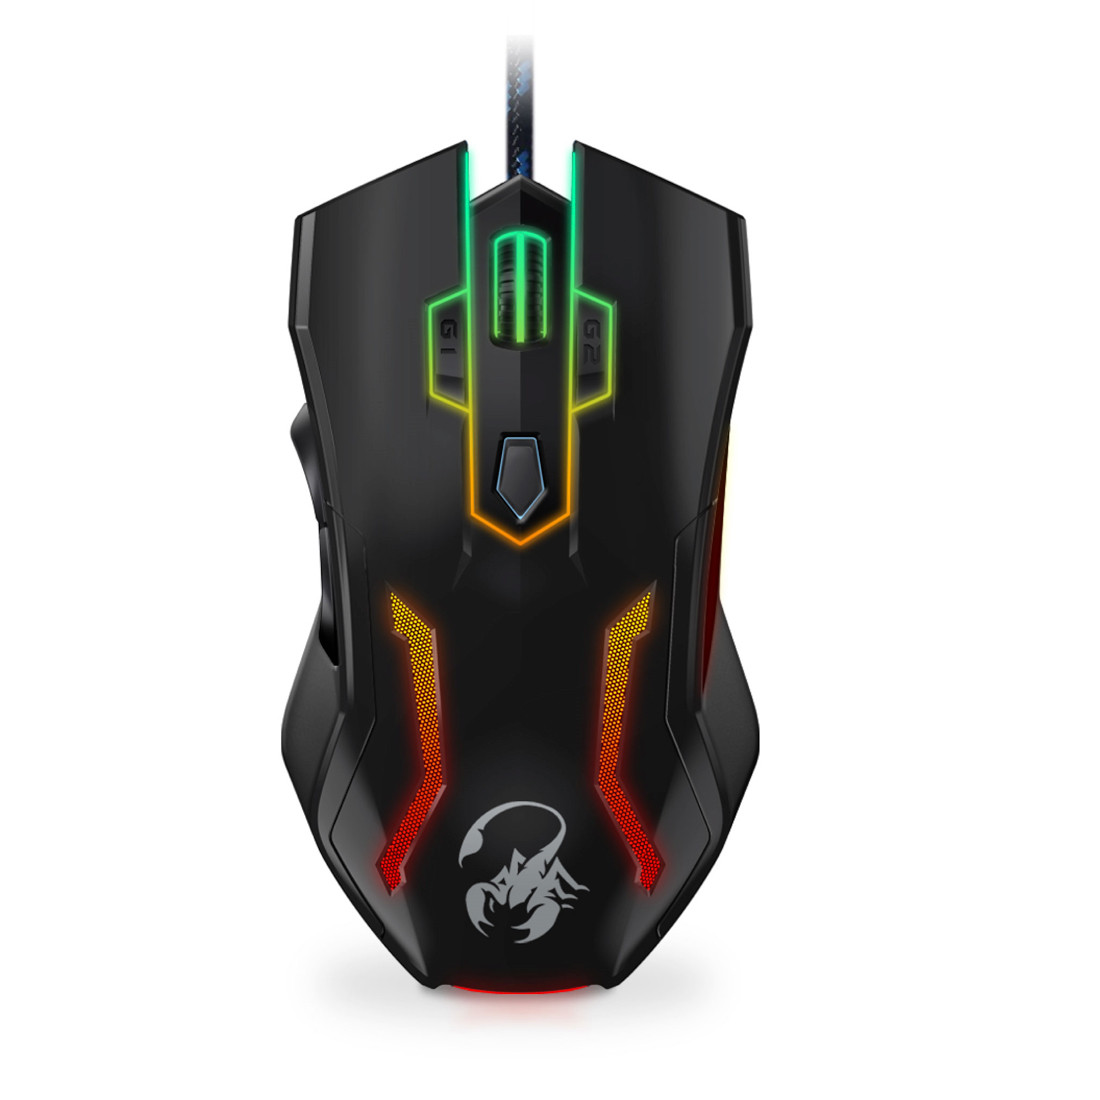 Компьютерная мышь Genius Scorpion Spear Pro RGB (Black)